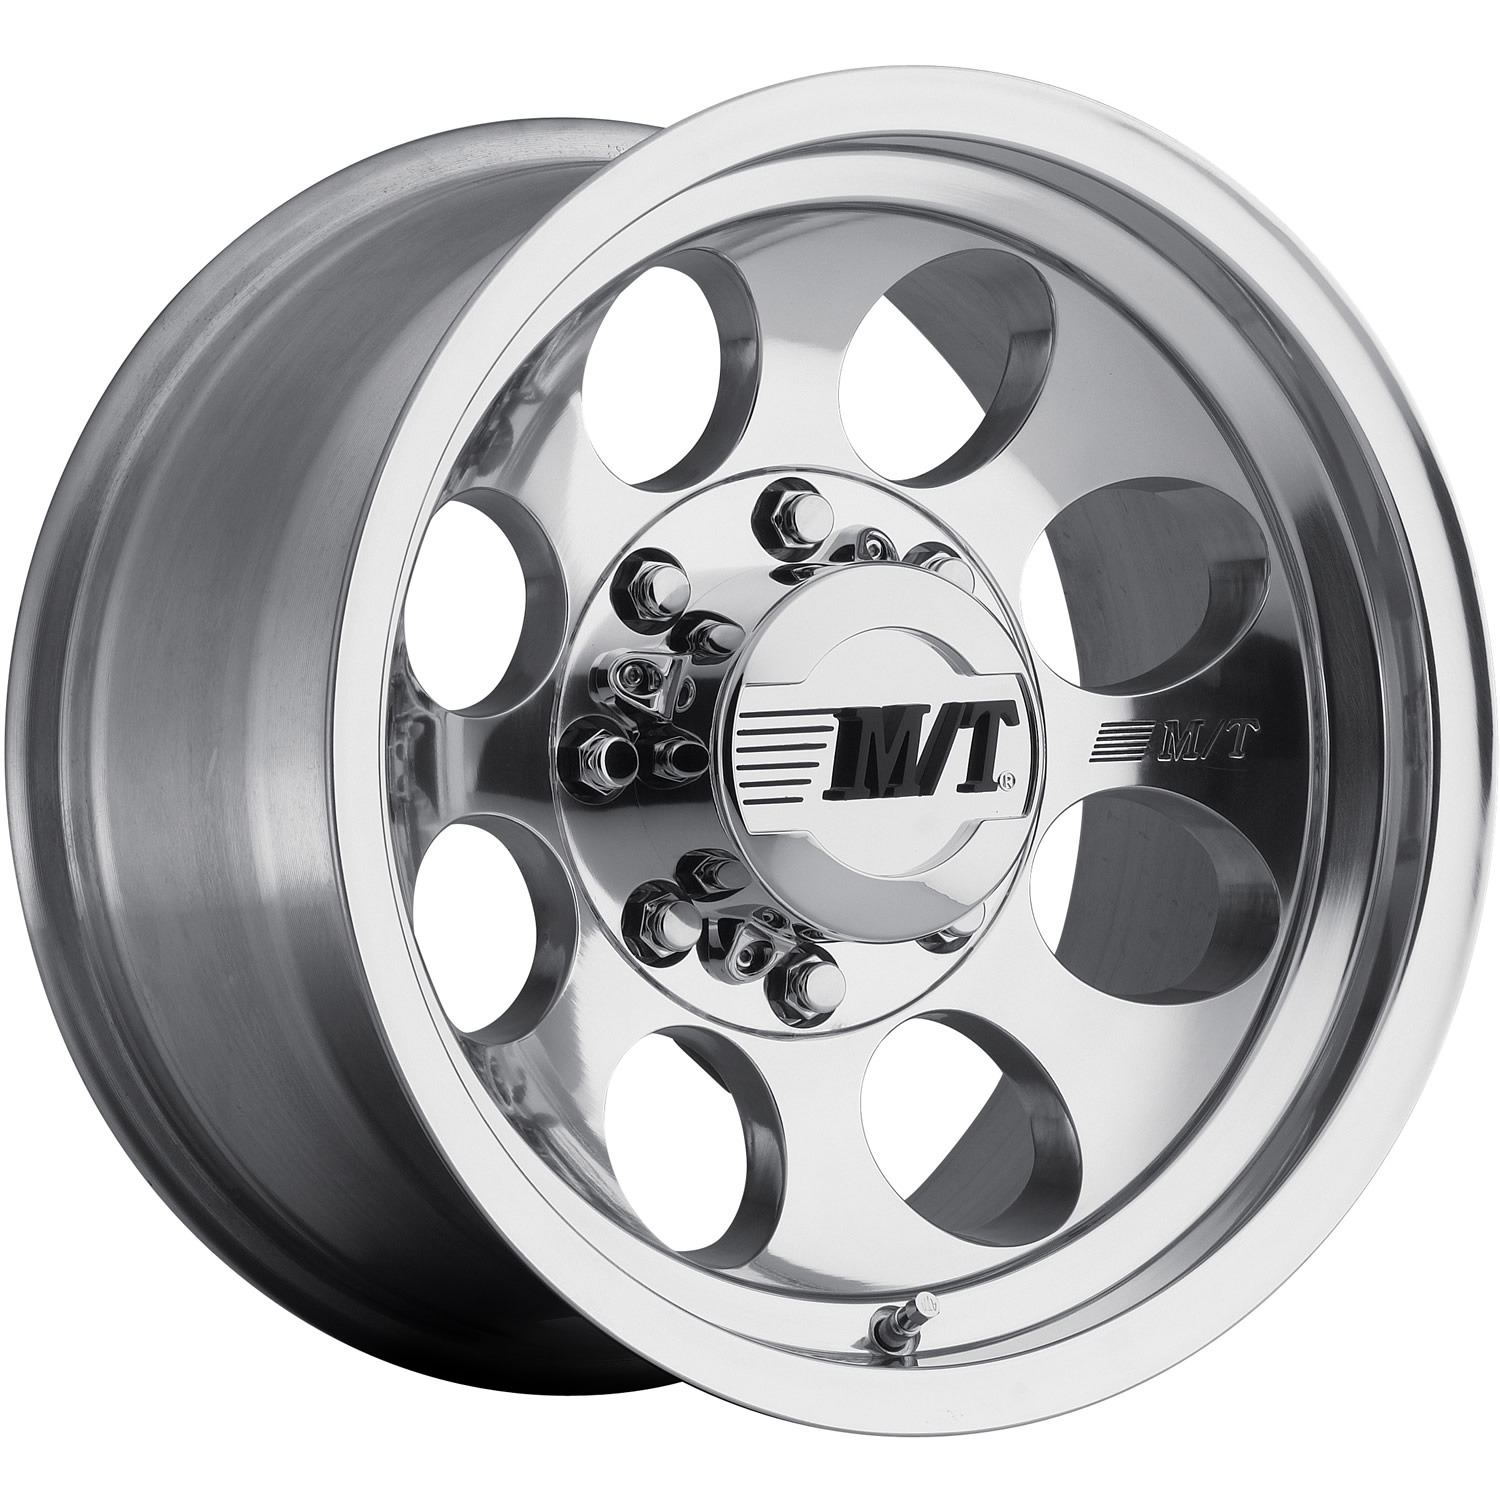 Mickey thompson classic iii 17x9 0 custom wheels for Classic 3